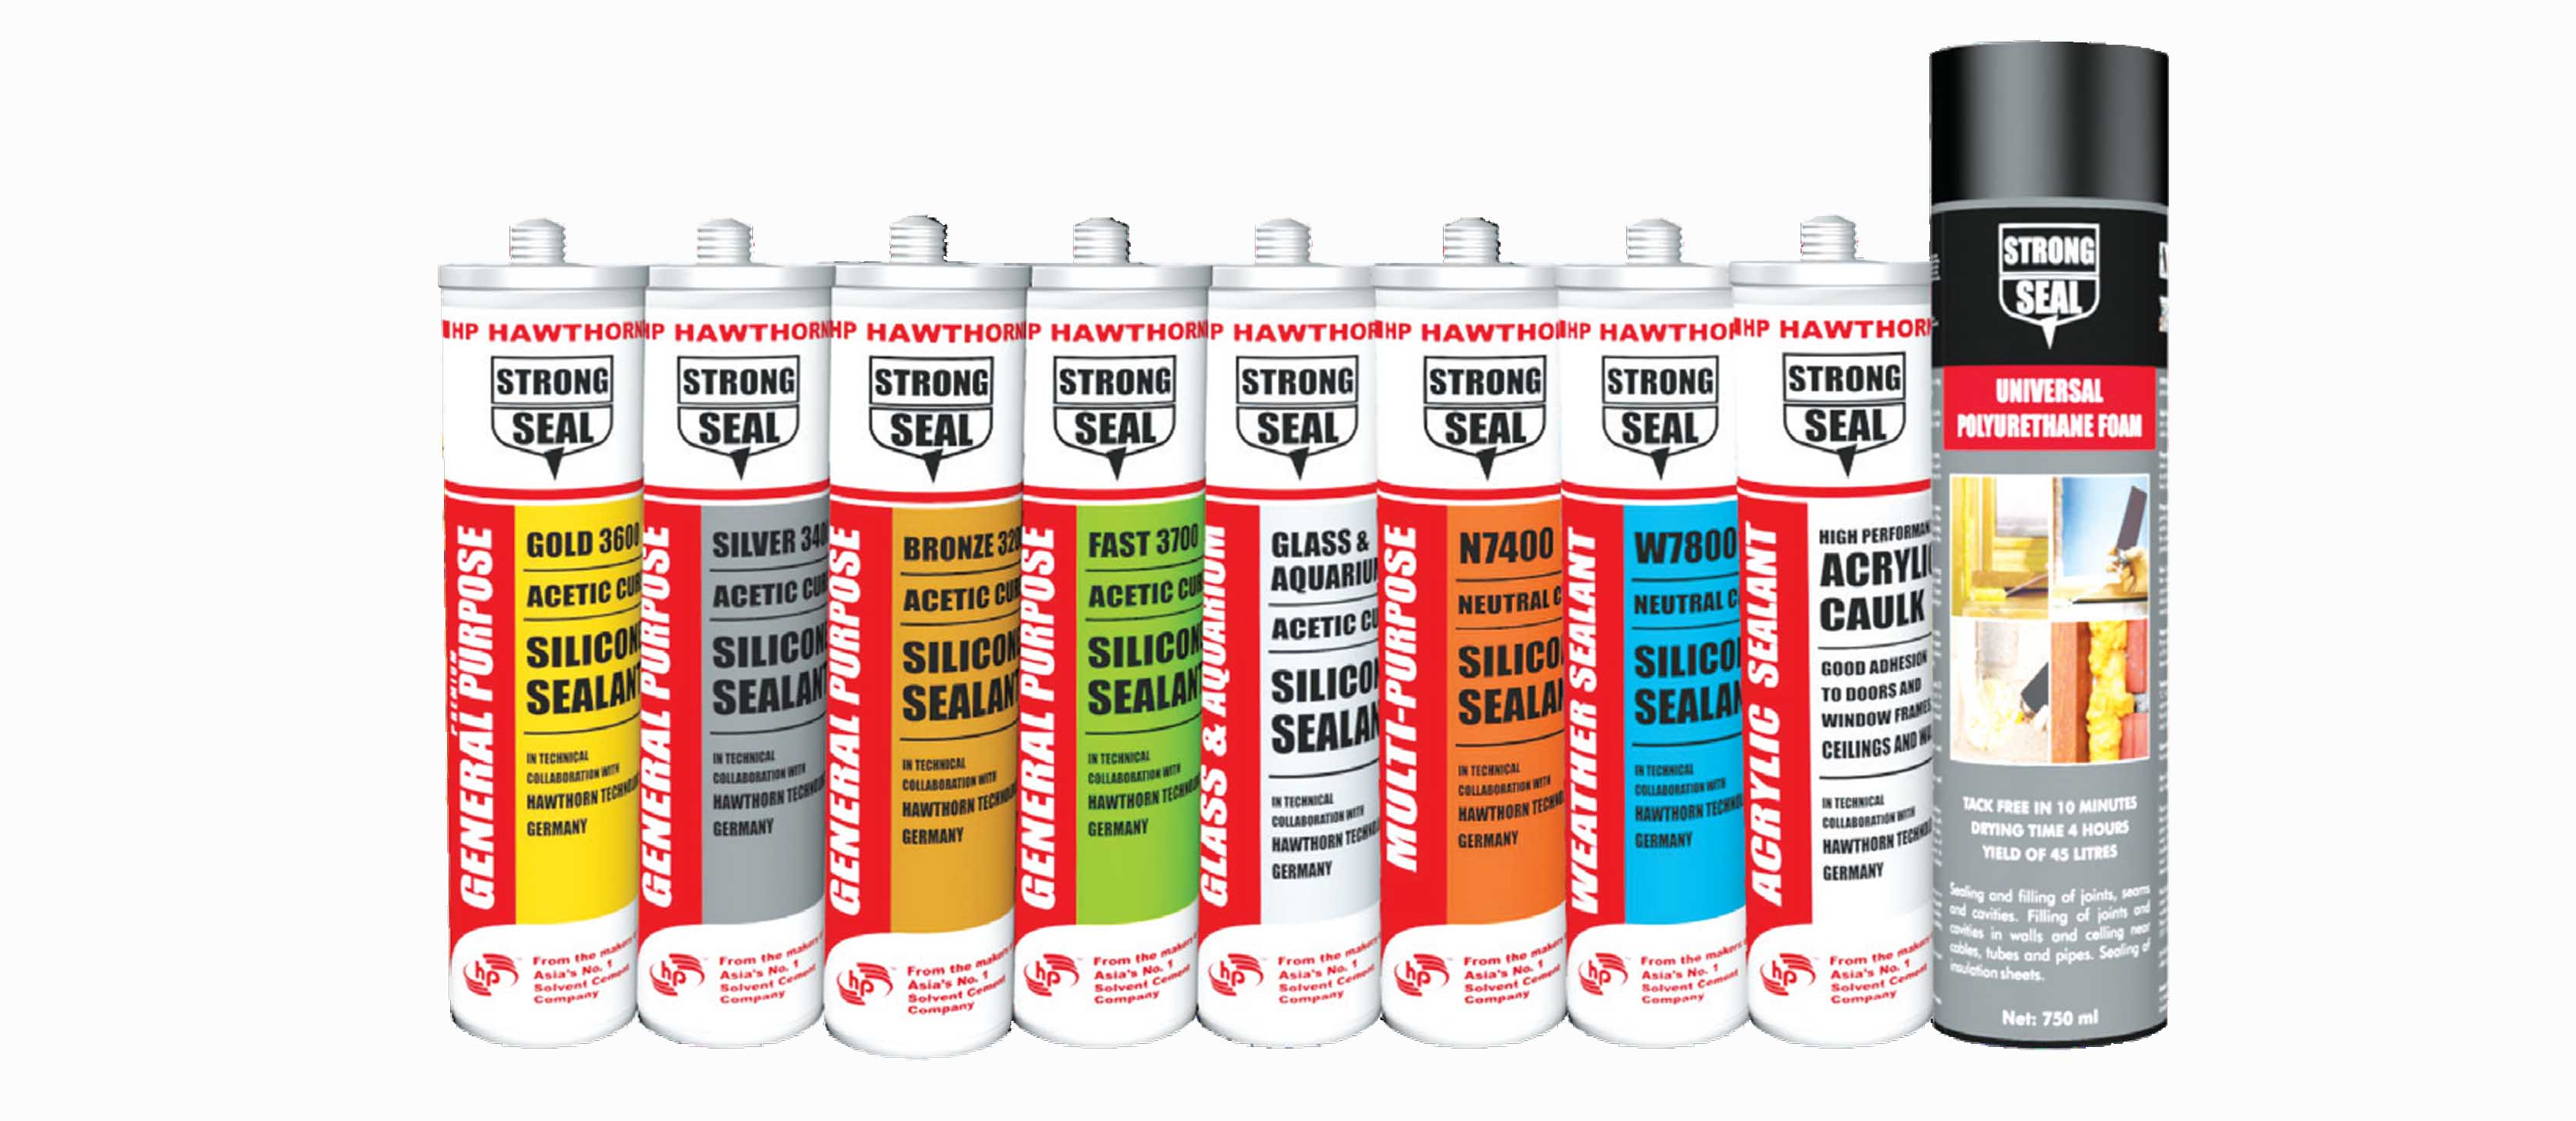 What can cause silicone sealants to fail?